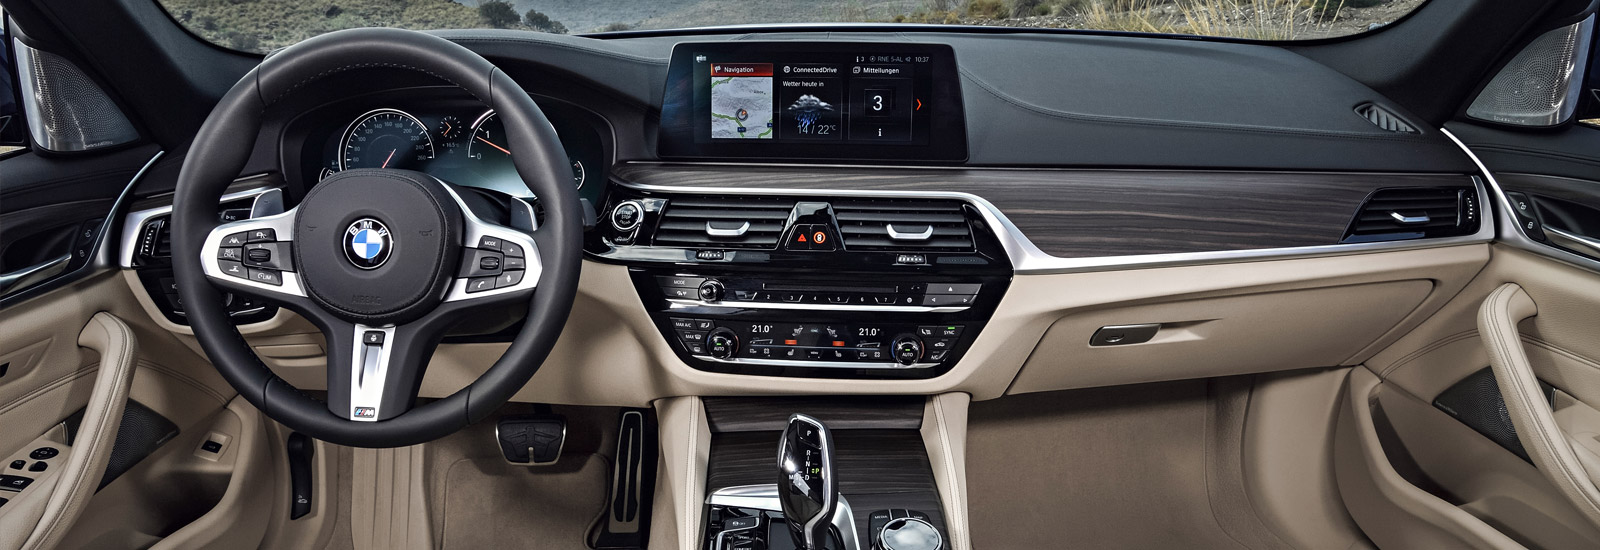 2018 bmw 5 series interior. simple interior the new 1 series could borrow interior styling cues from the 5 series  pictured here to 2018 bmw series